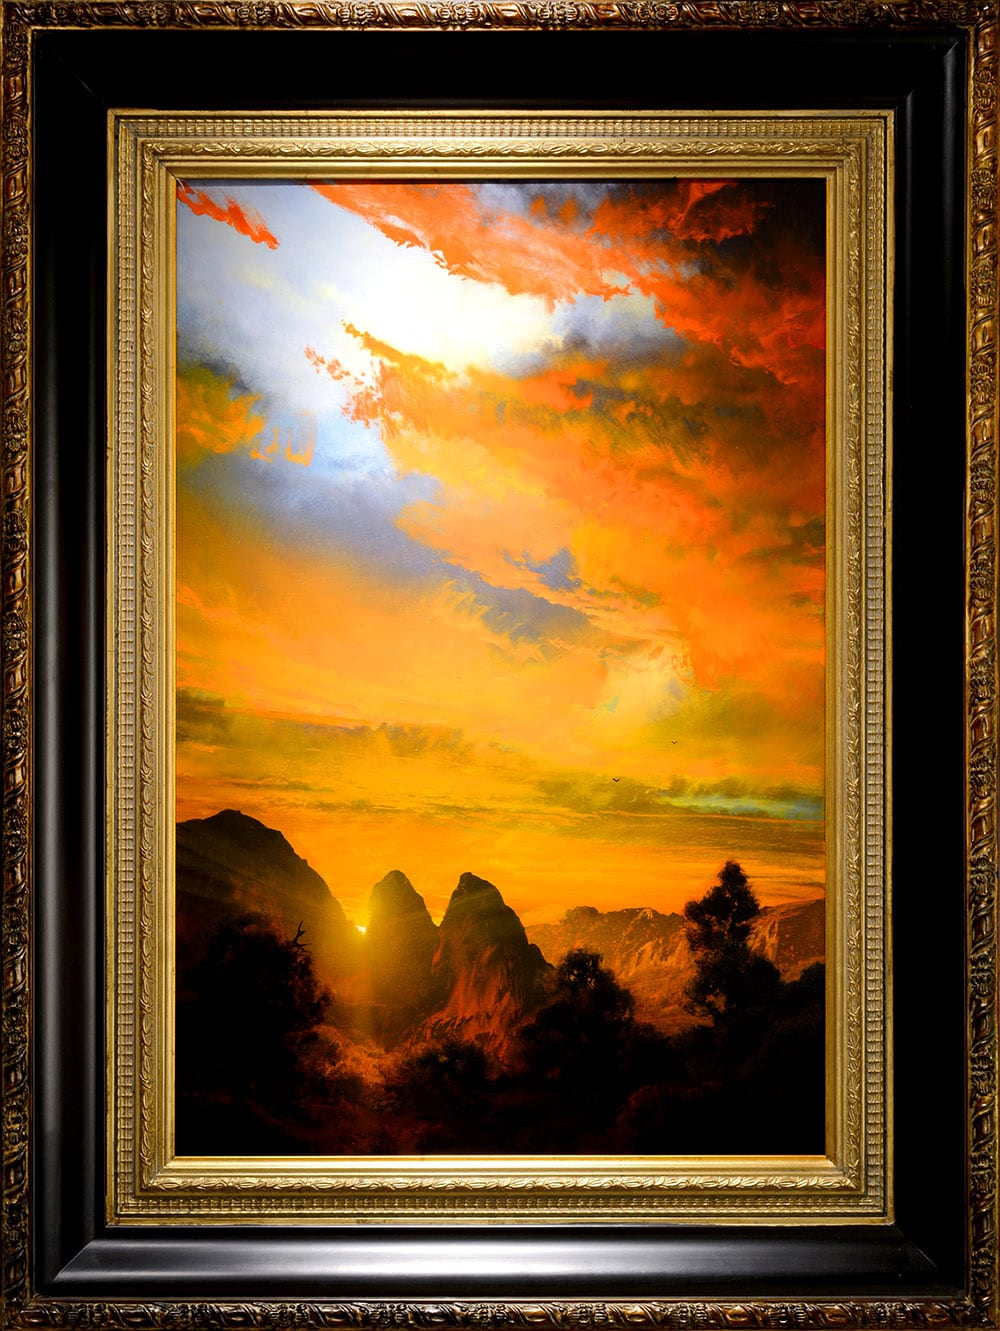 Come Into the Light With Me | Dale Terbush | Painting-Exposures International Gallery of Fine Art - Sedona AZ